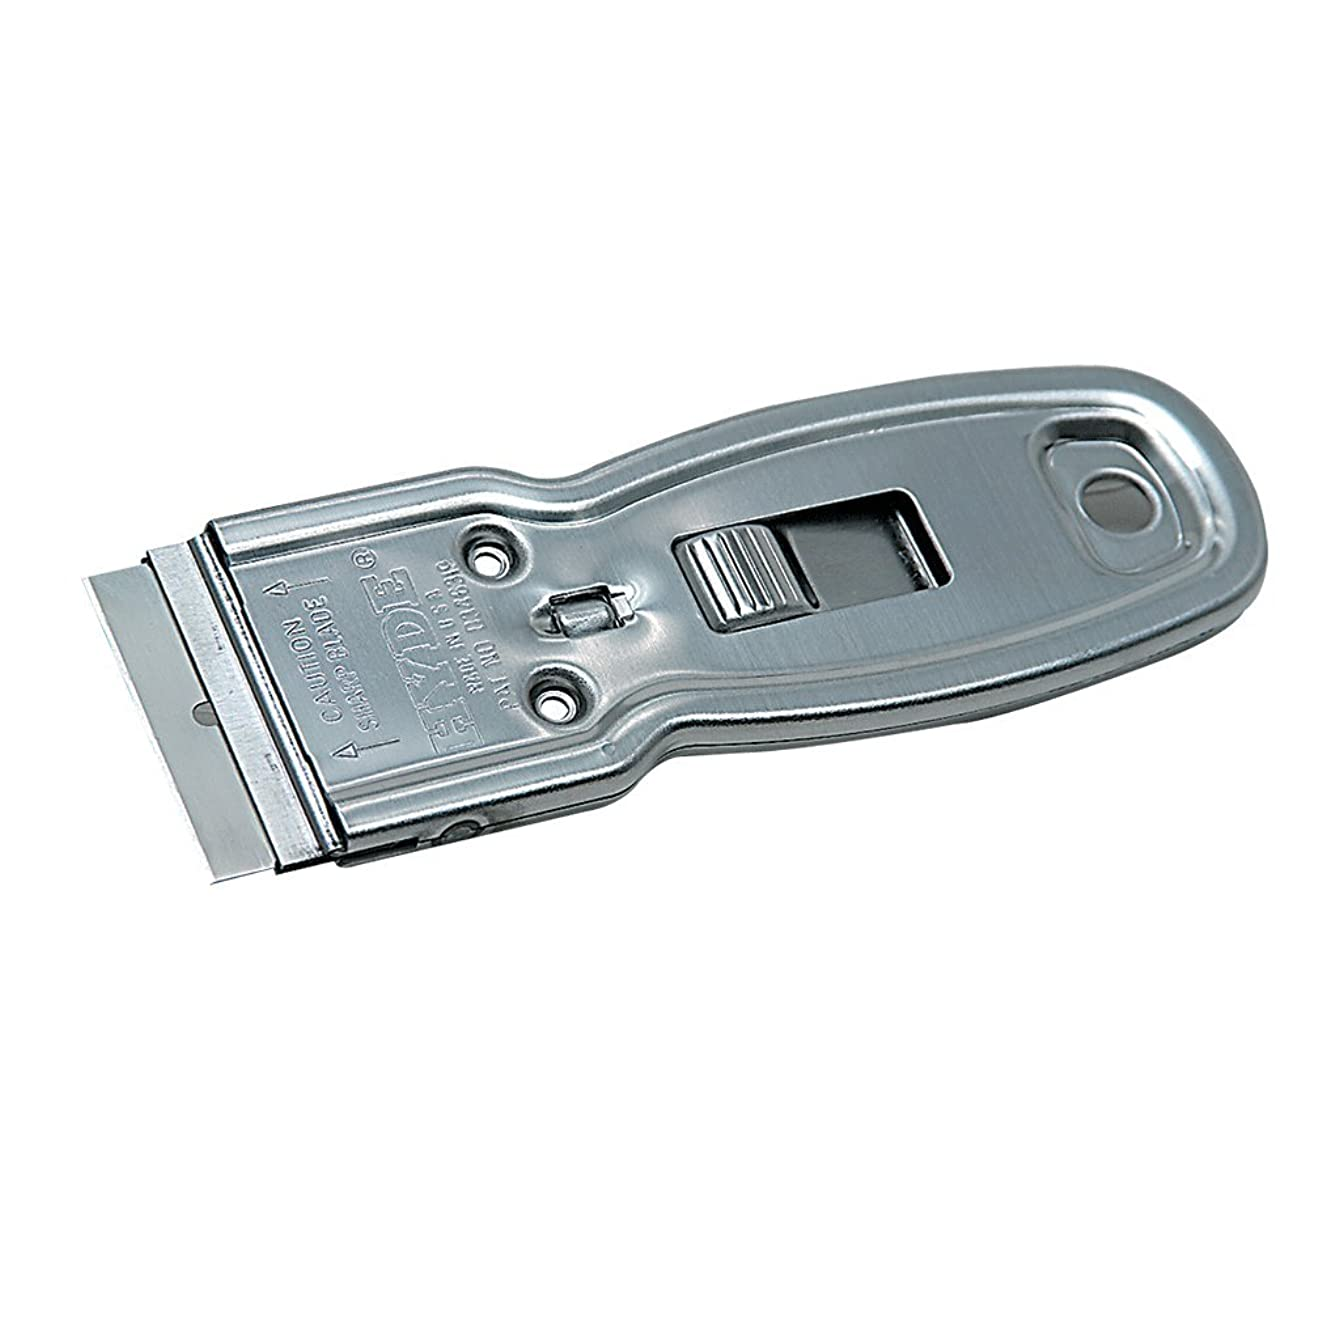 Range Kleen Smooth Top Scraper 686 Dimensions 8.5 x 3.5 inches